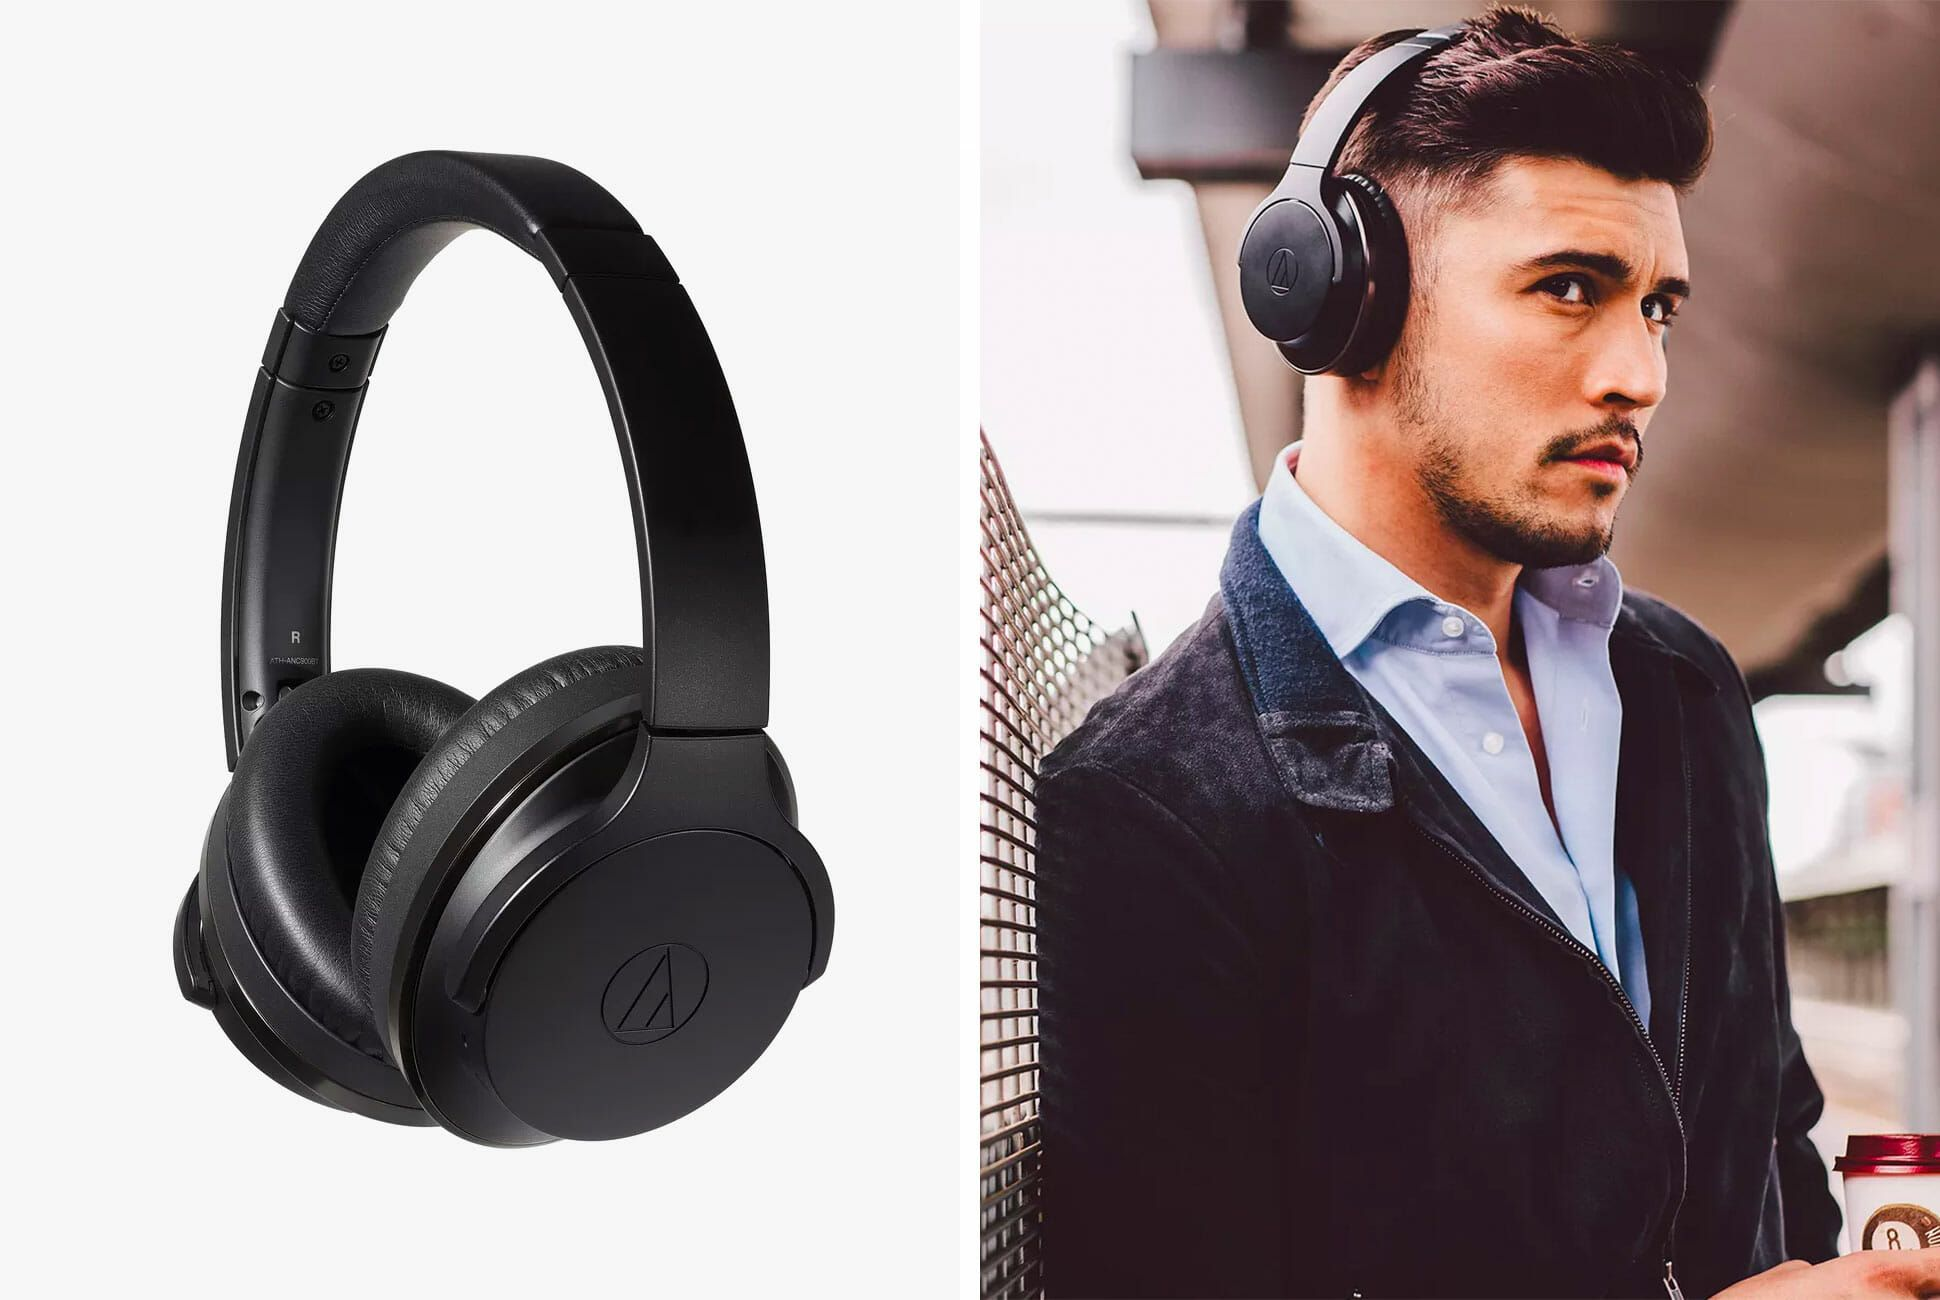 Audio Technica Targets Sony And Bose With Impressive New Headphones Headphones Audio Technica New Headphones